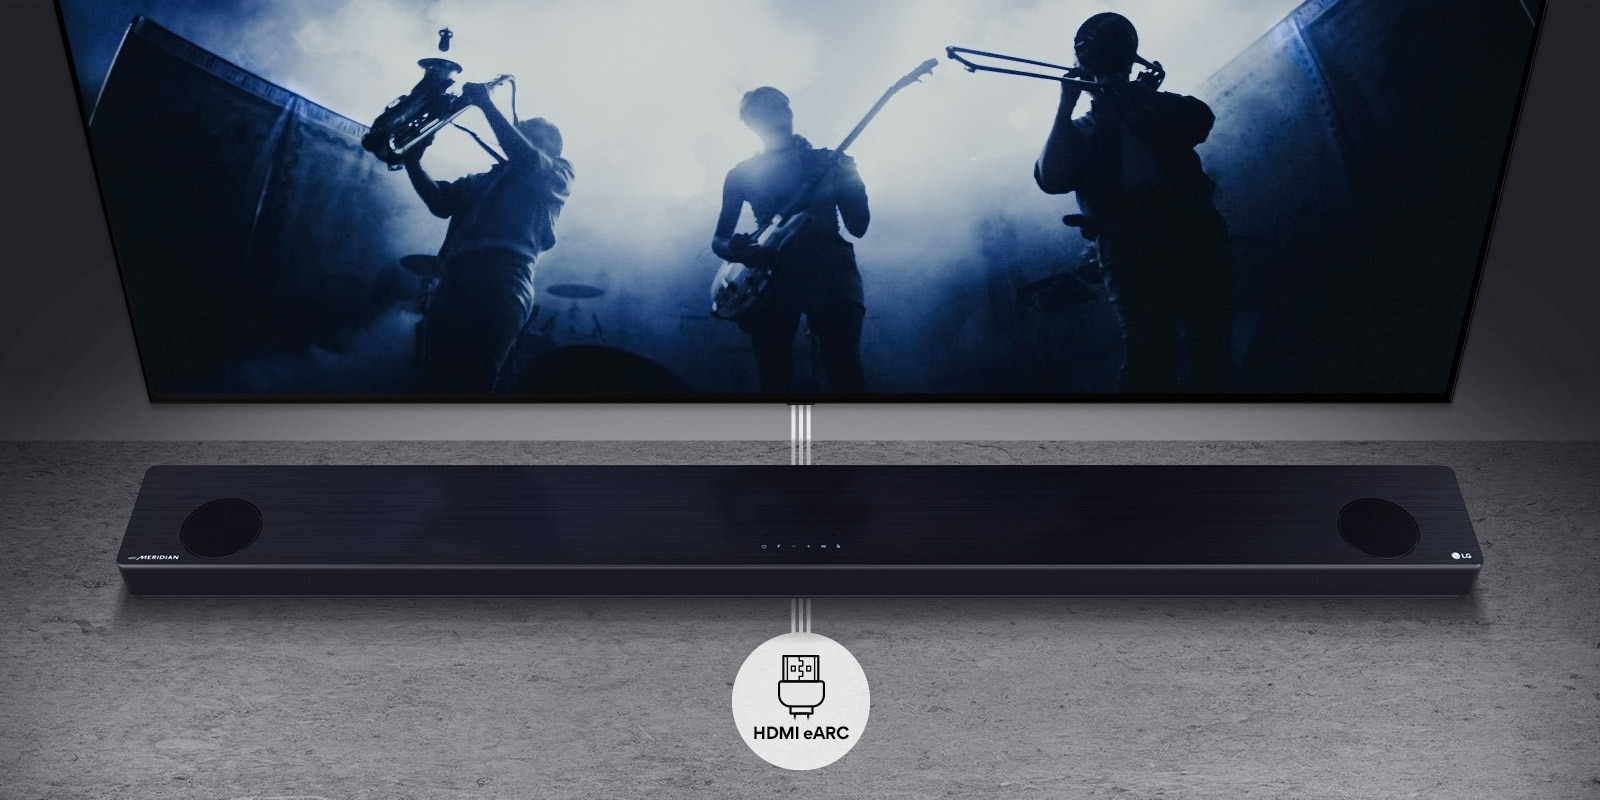 TV is on the wall. TV shows a group of band in black silhouette. LG Soundbar is right below TV on a gray shelf. There is a HDMI eARC icon below the soundbar.